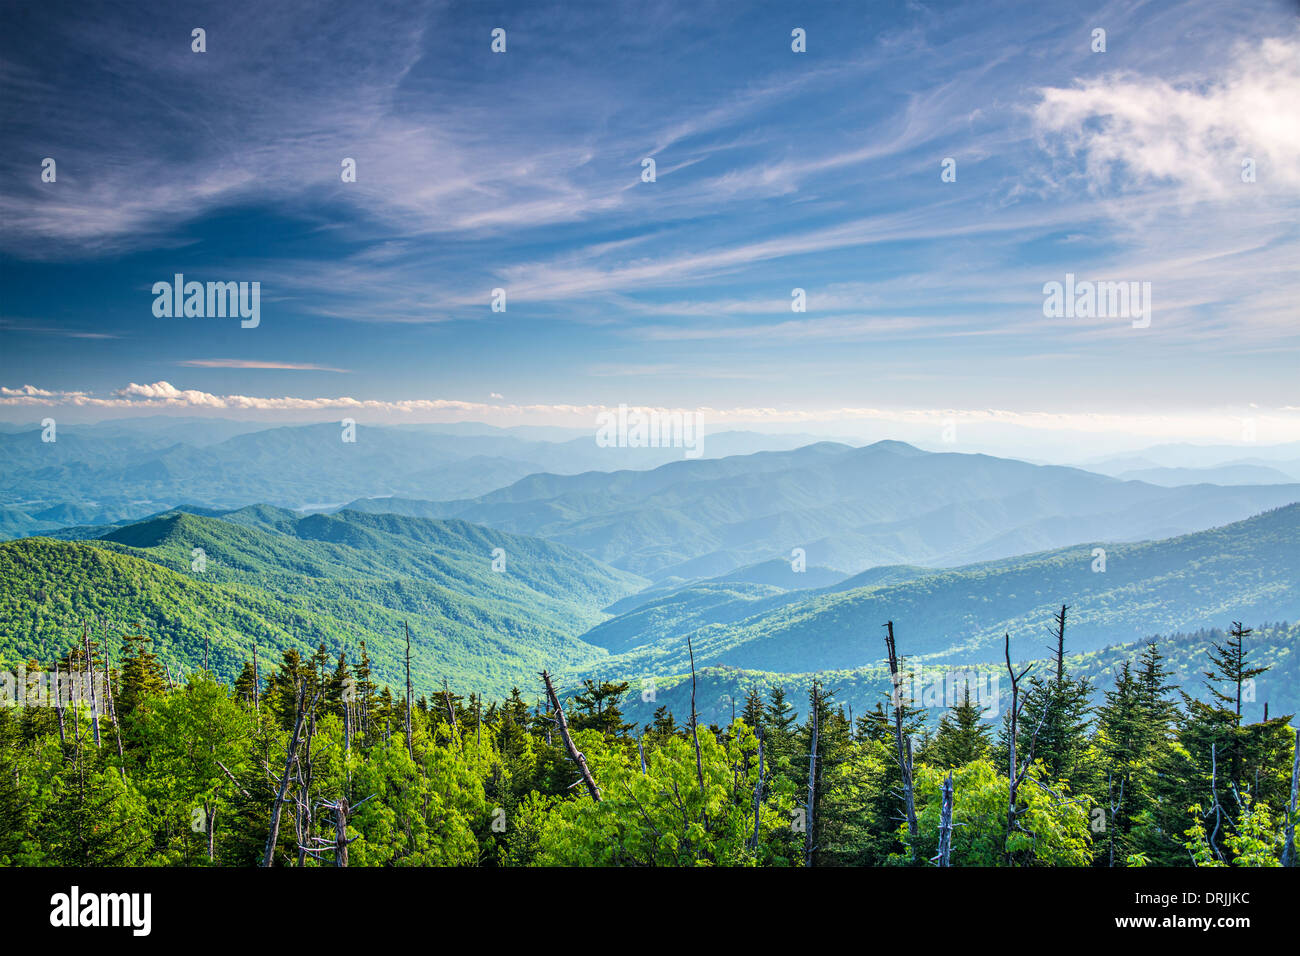 View from Clingman's Dome in the Great Smoky Mountains National Park near Gatlinburg, Tennessee. - Stock Image